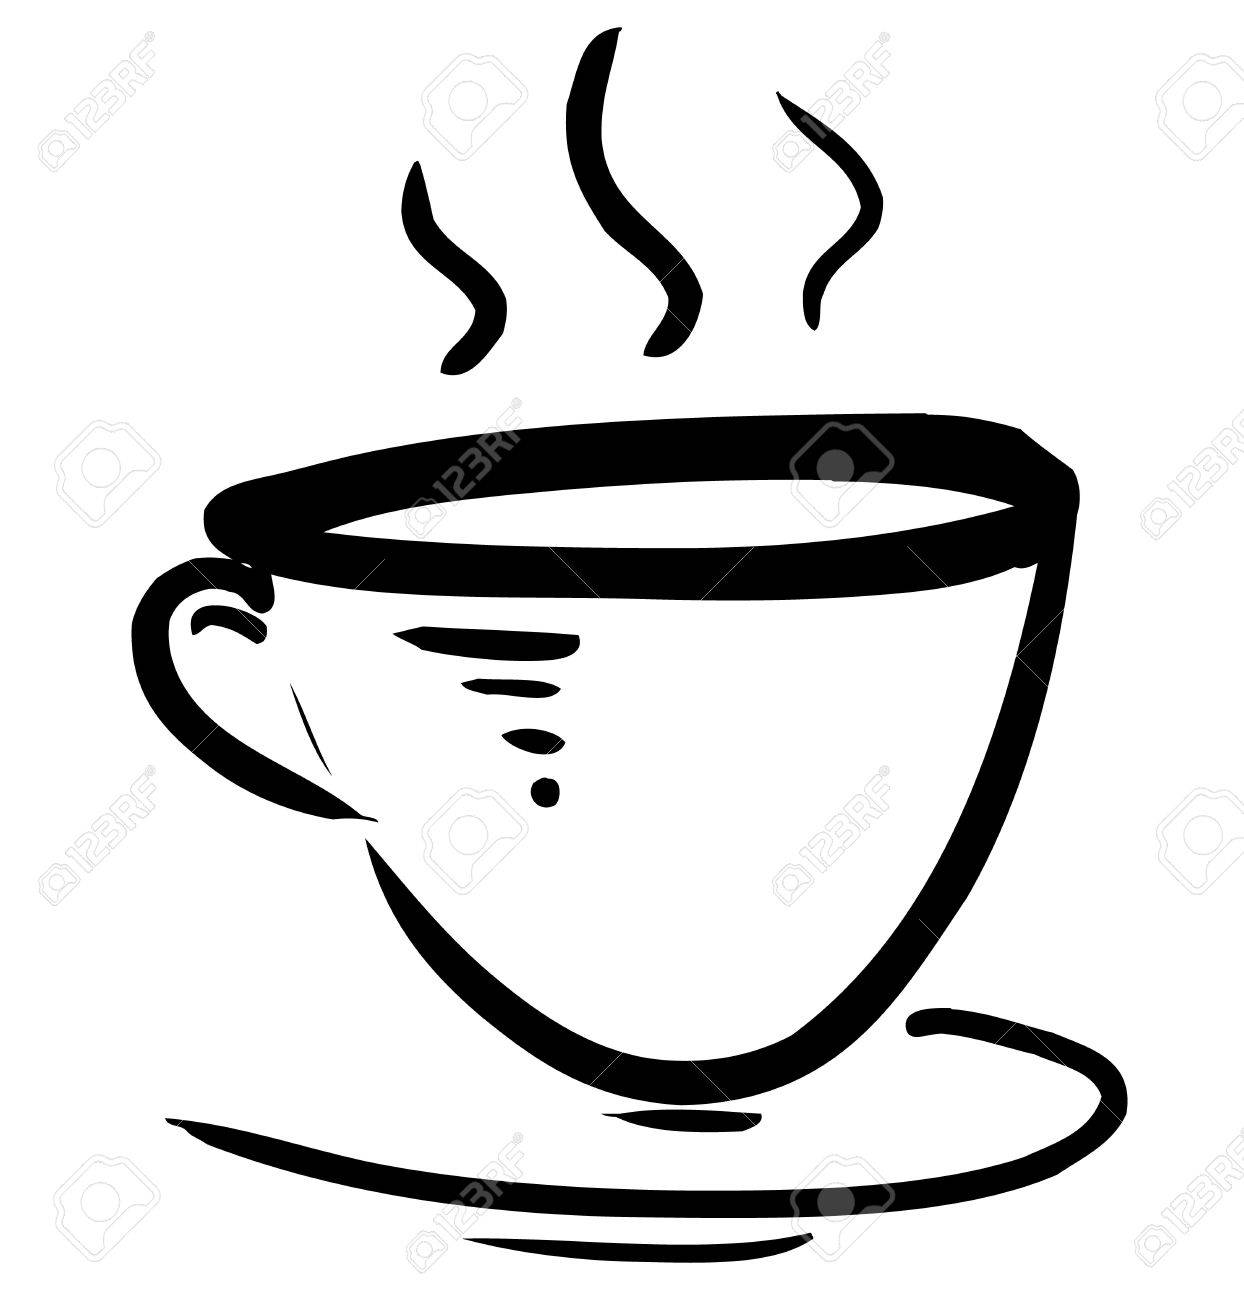 Cup with steam stylized Stock Vector - 18010341